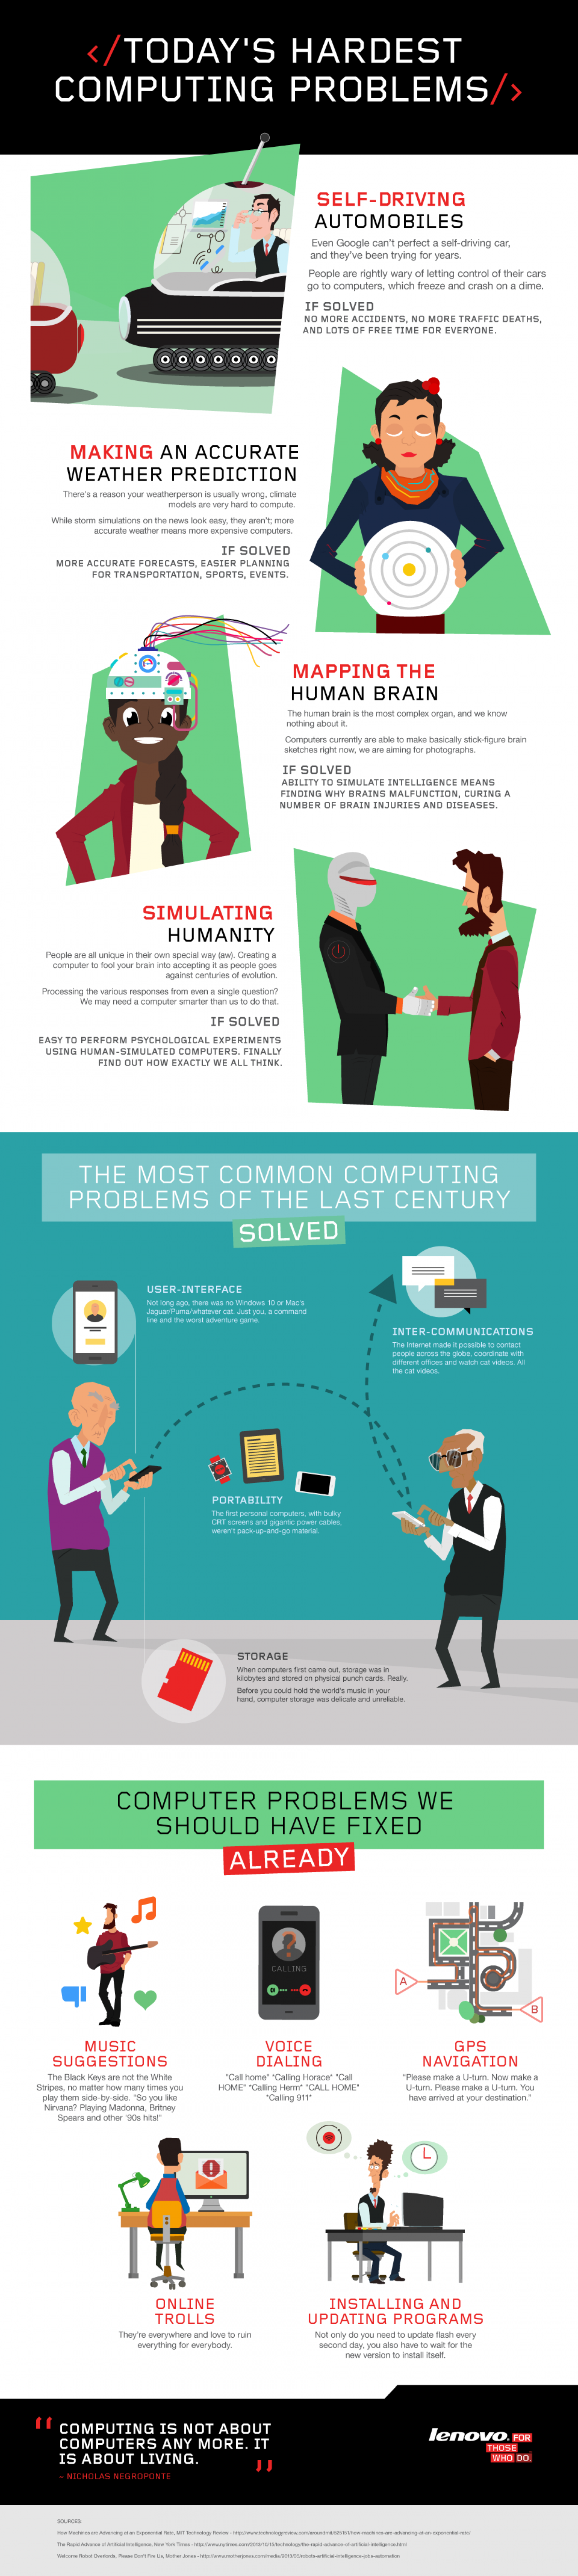 Lenovo - Today's Hardest Computing Problems Infographic